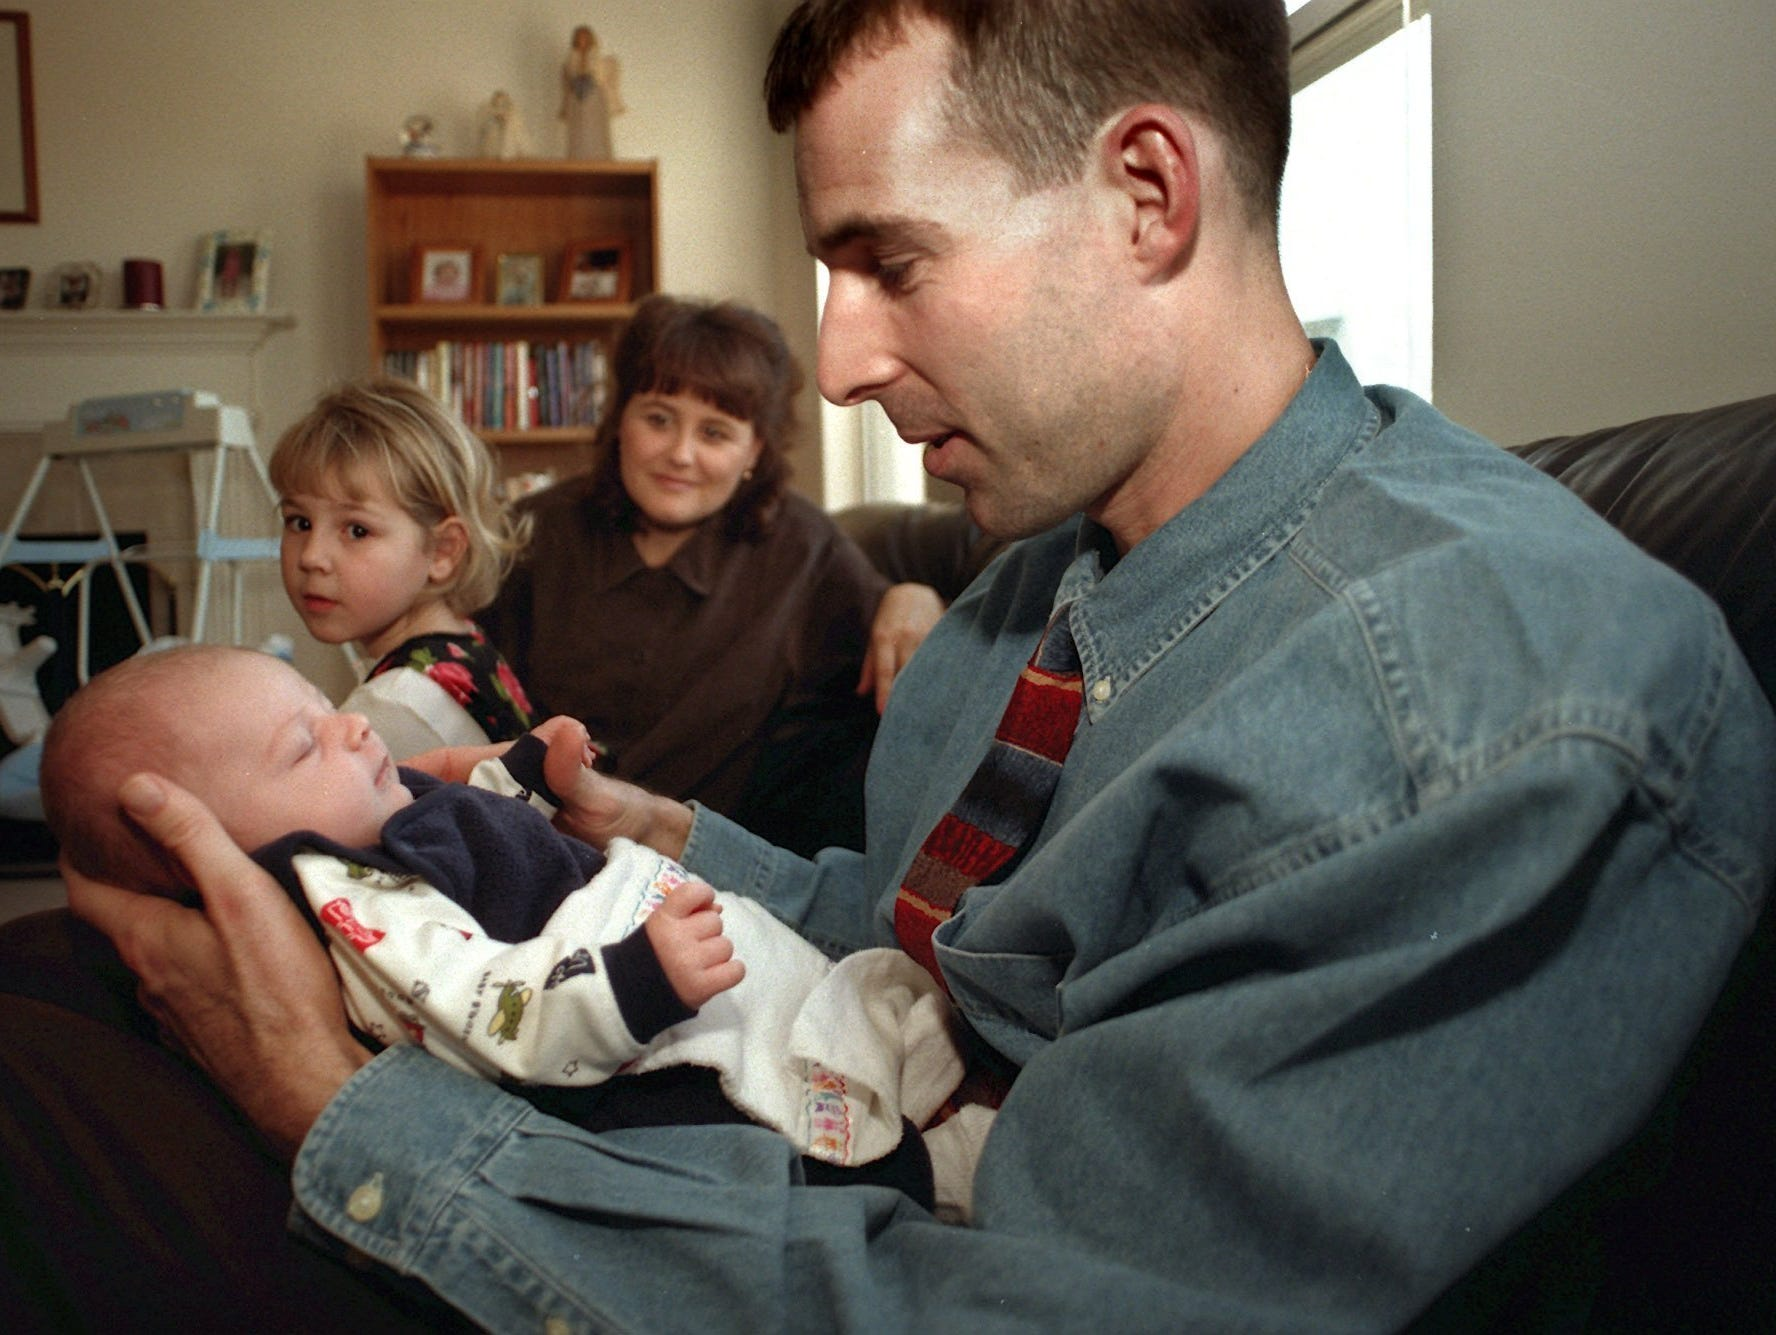 In this 1999 file photo, Greg Mitchell sits with his then-three-week-old son Bryson and his daughter Aleah, 5, and wife, Dina, look on.